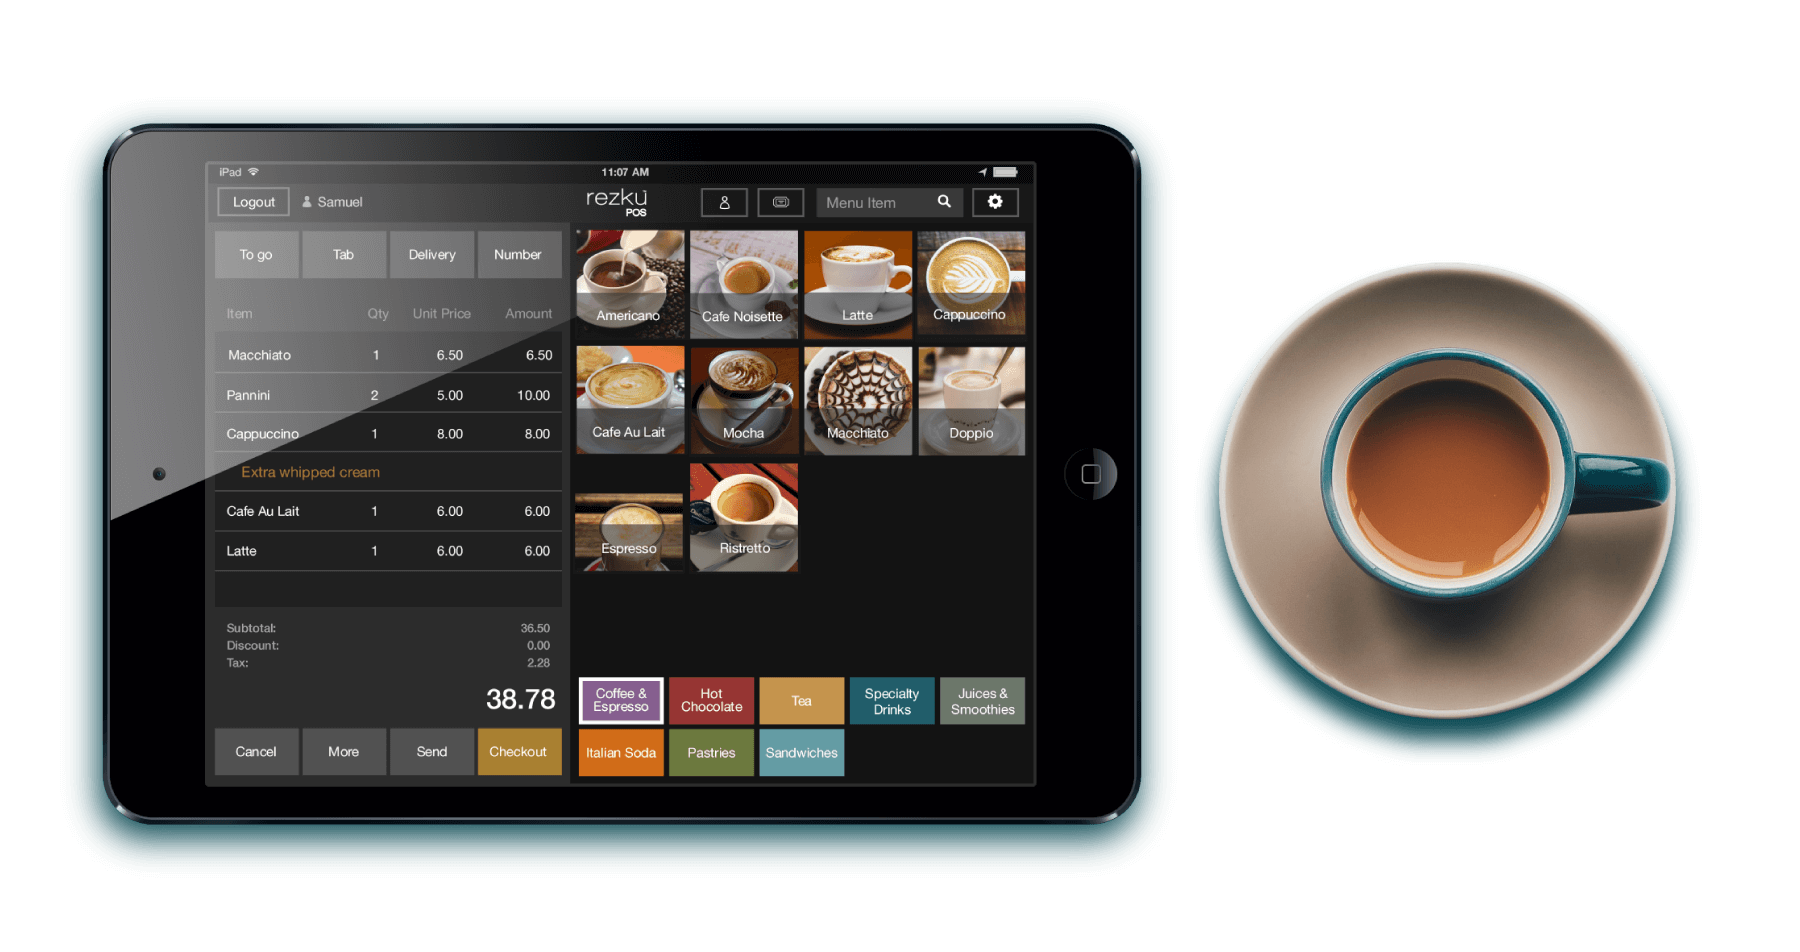 iPad POS with order screen